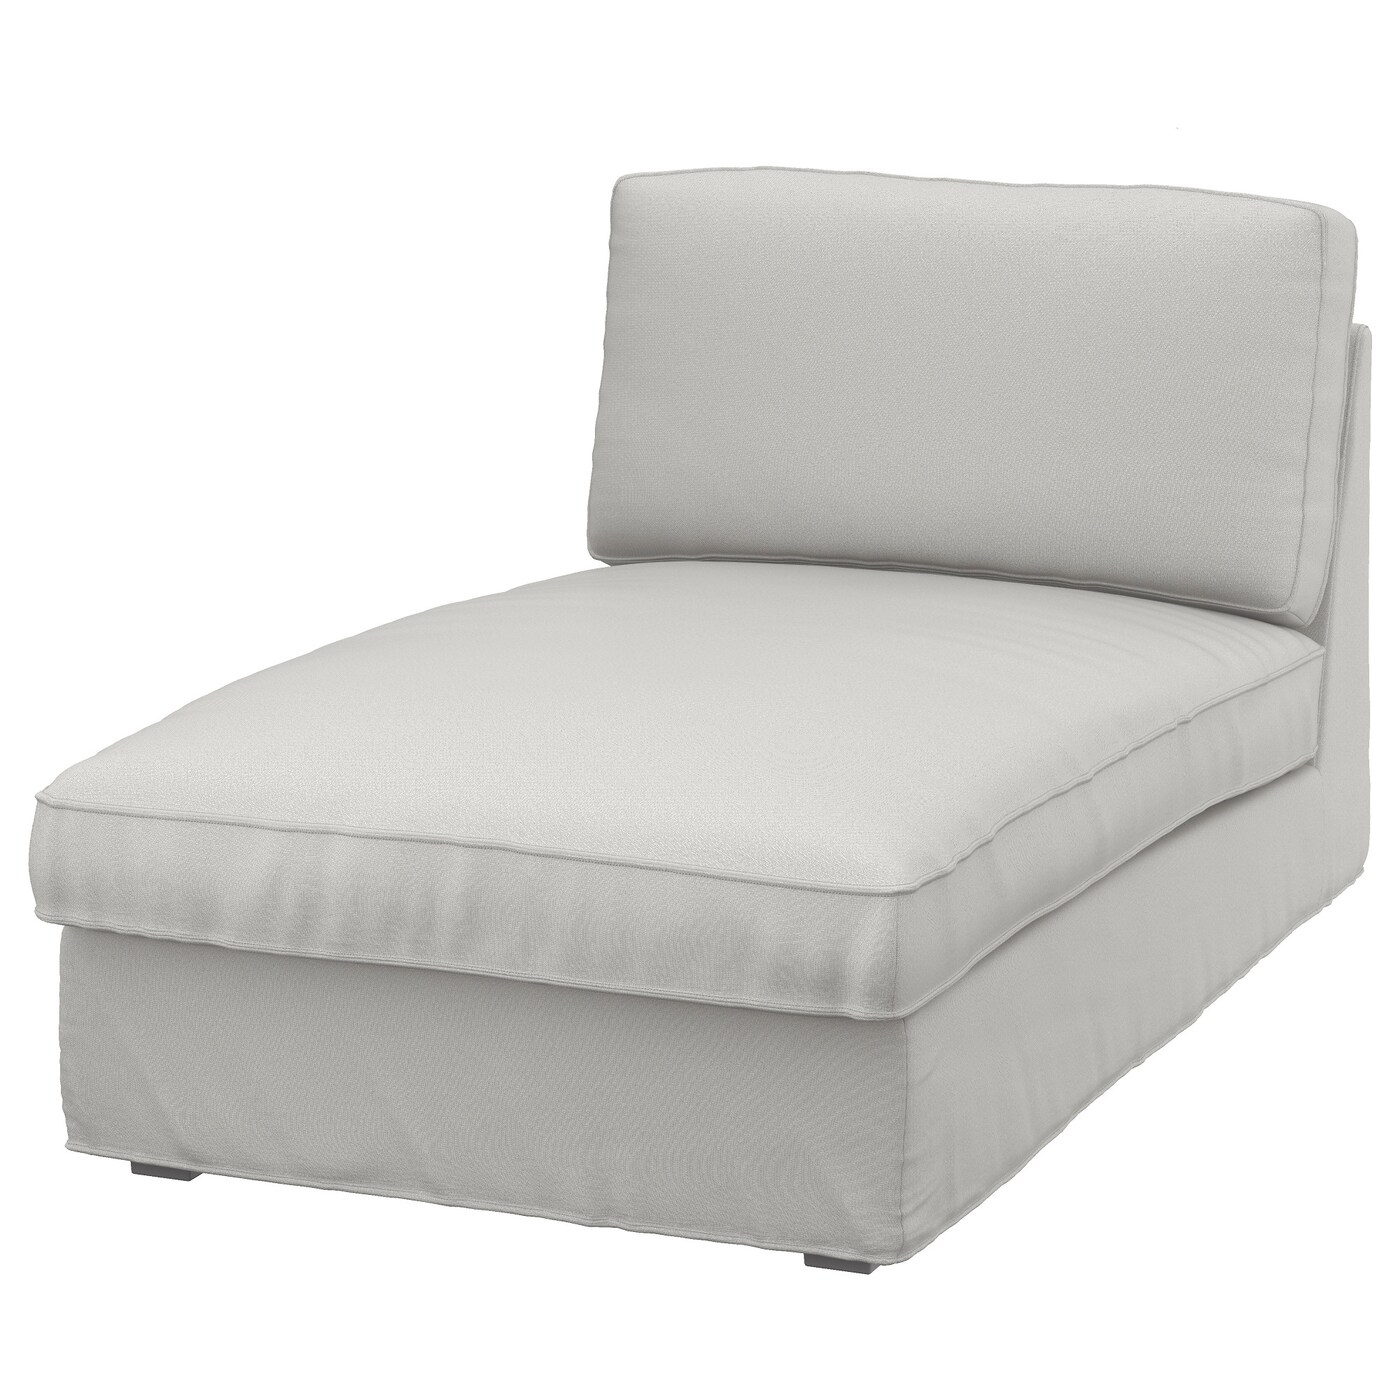 Kivik ikea for Chaise longue ikea